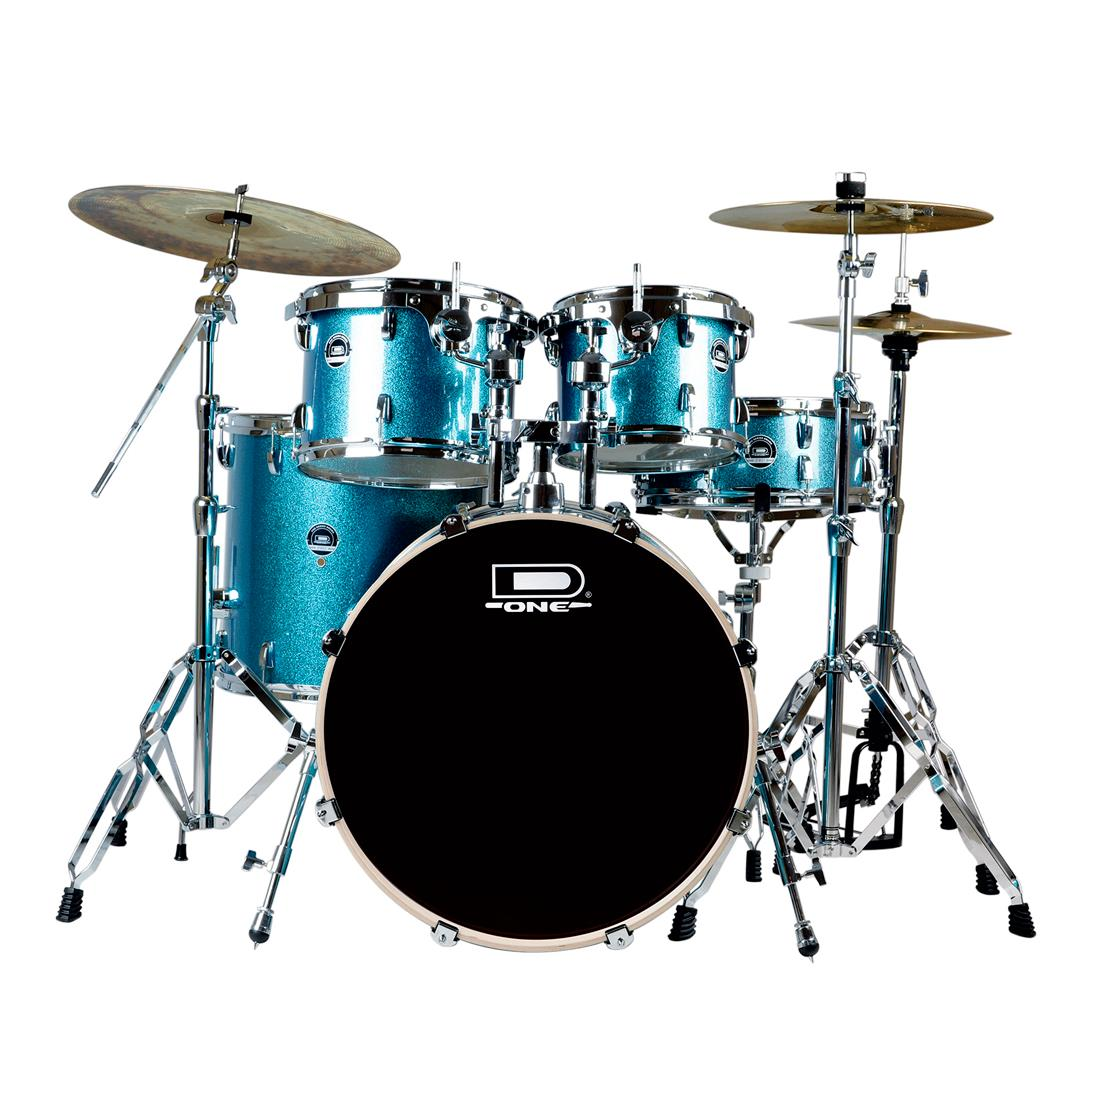 KIT BATERIA D ONE STREET DS20 BLUE + KIT PRATO ZEUS EVOLUTION PRO SET D + ESTANTE GIRAFA EXTRA